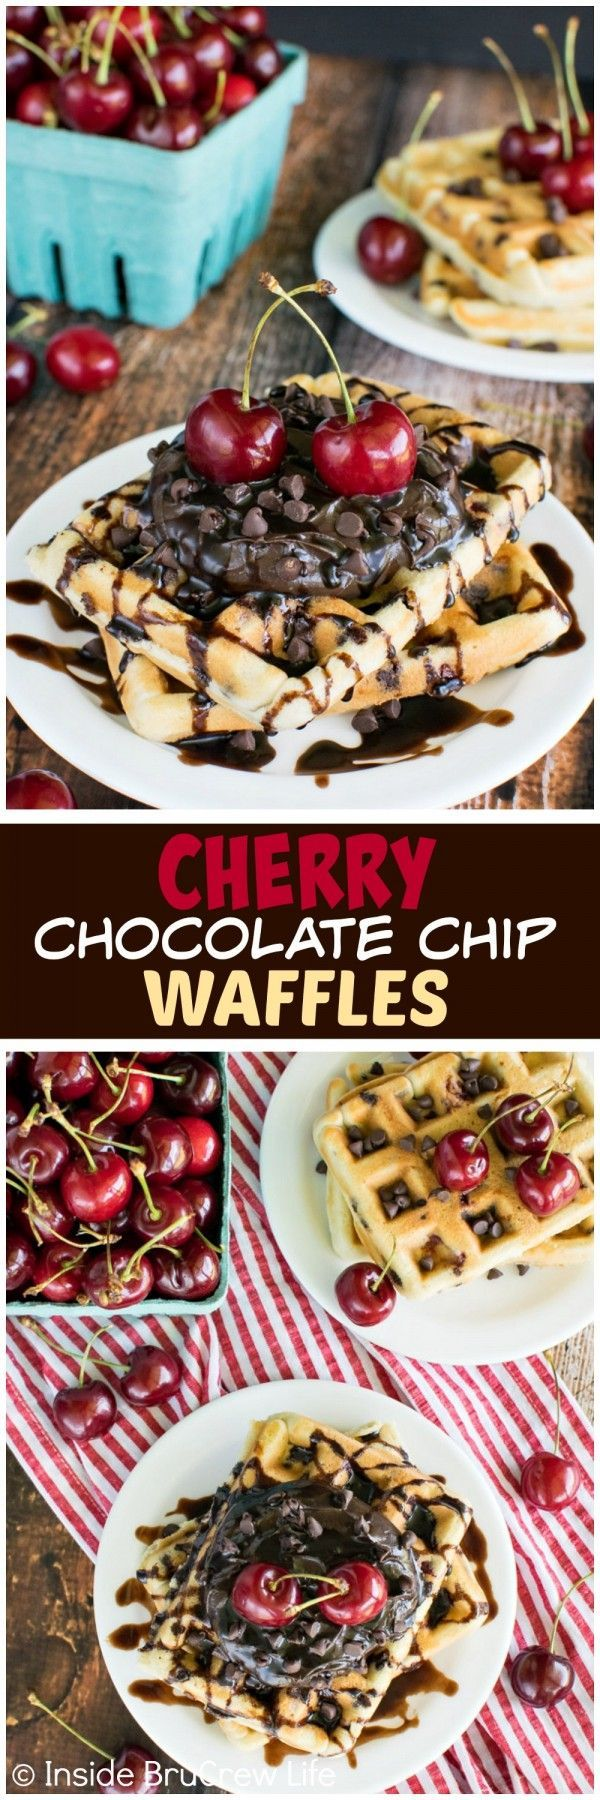 Cherry Chocolate Chip Waffles | Homemade, Chocolate chips and Waffle ...